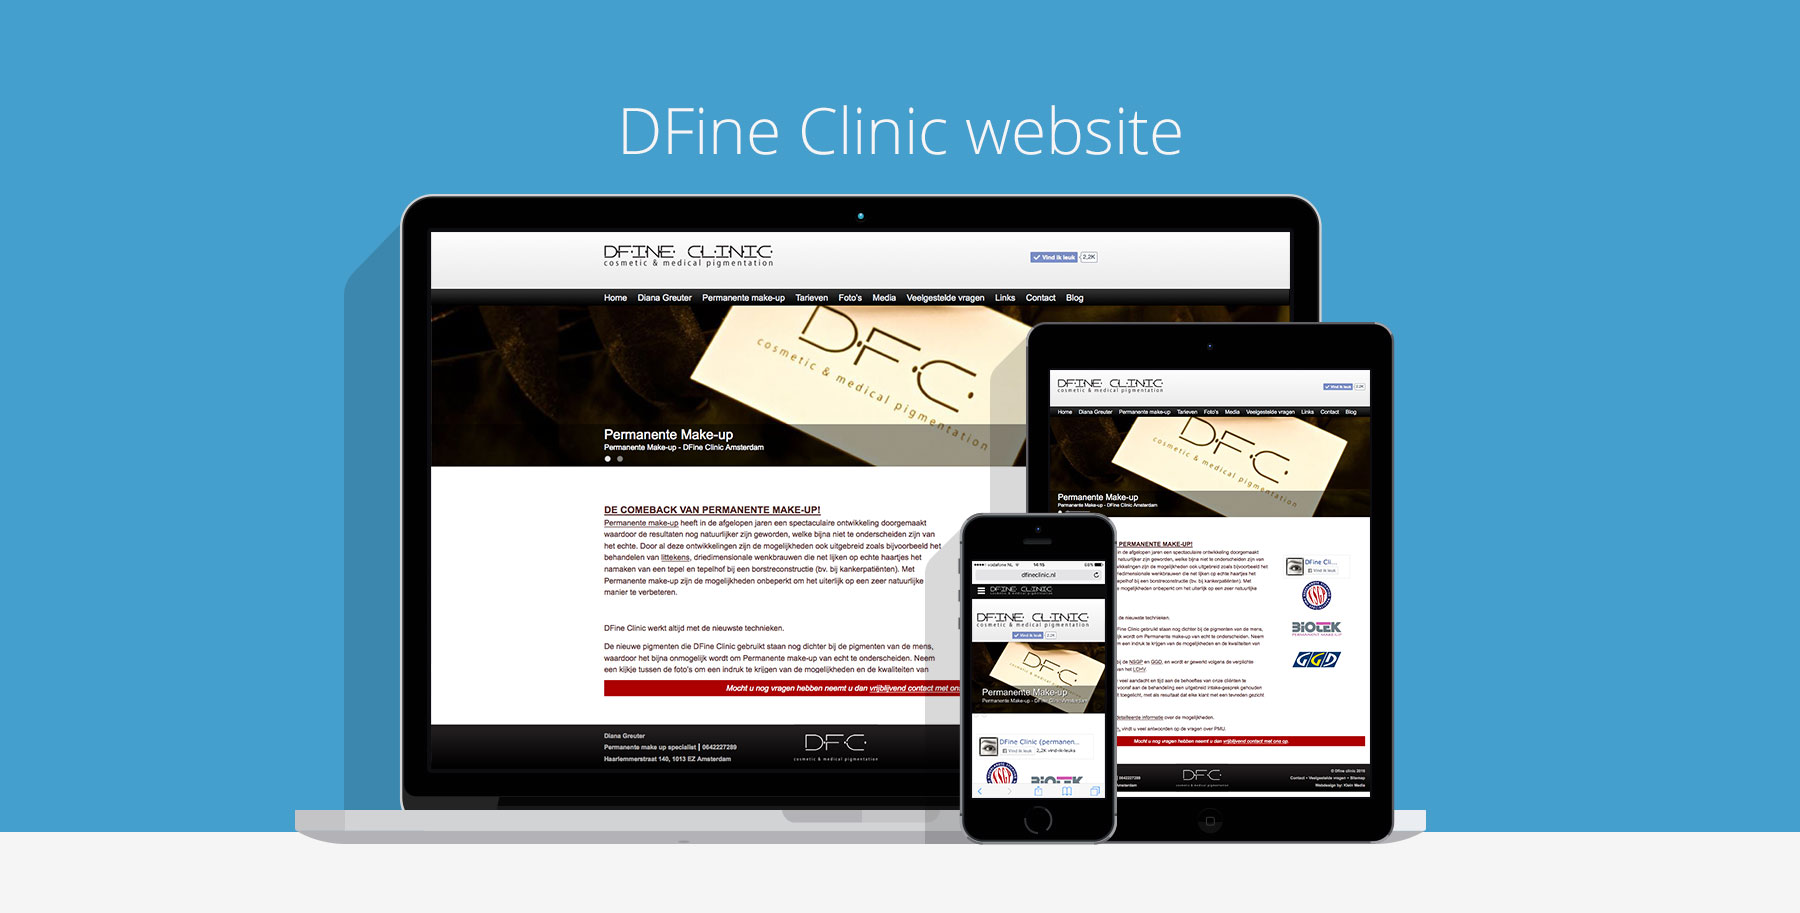 dfine clinic permanente make up website